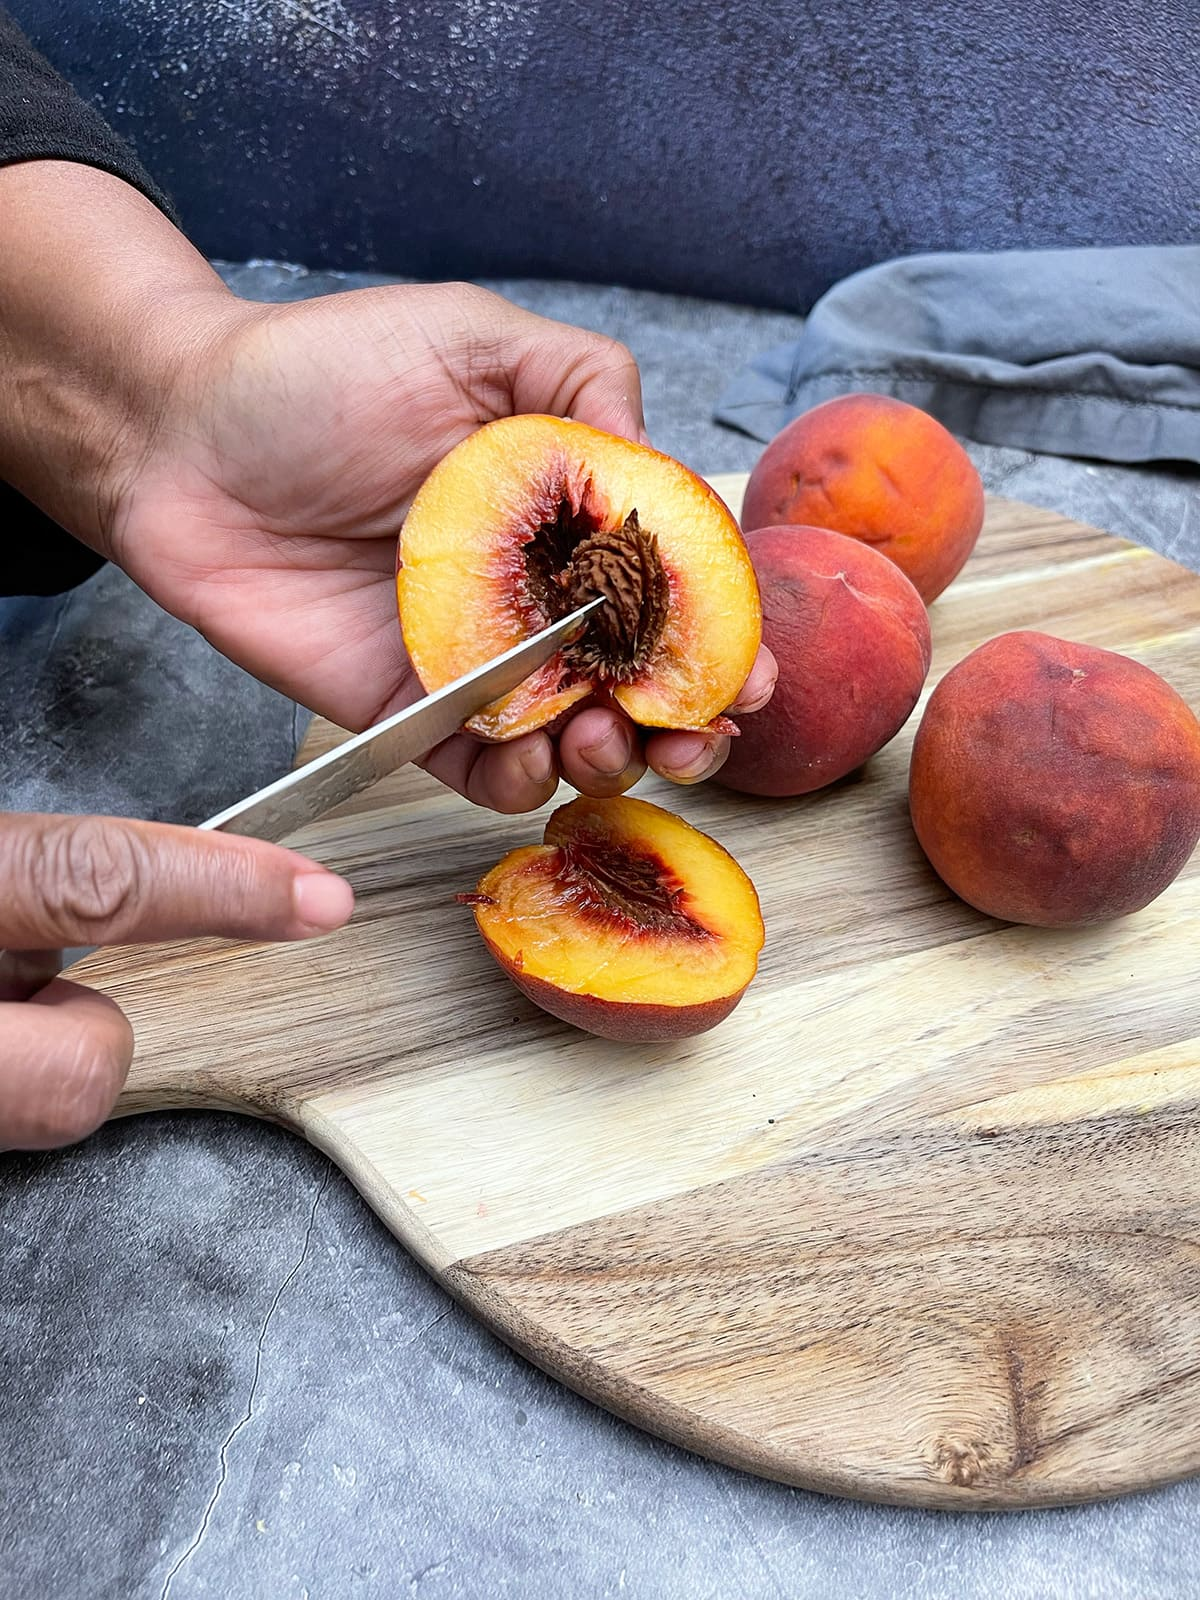 remove peach pit with paring knife on a wooden cutting board